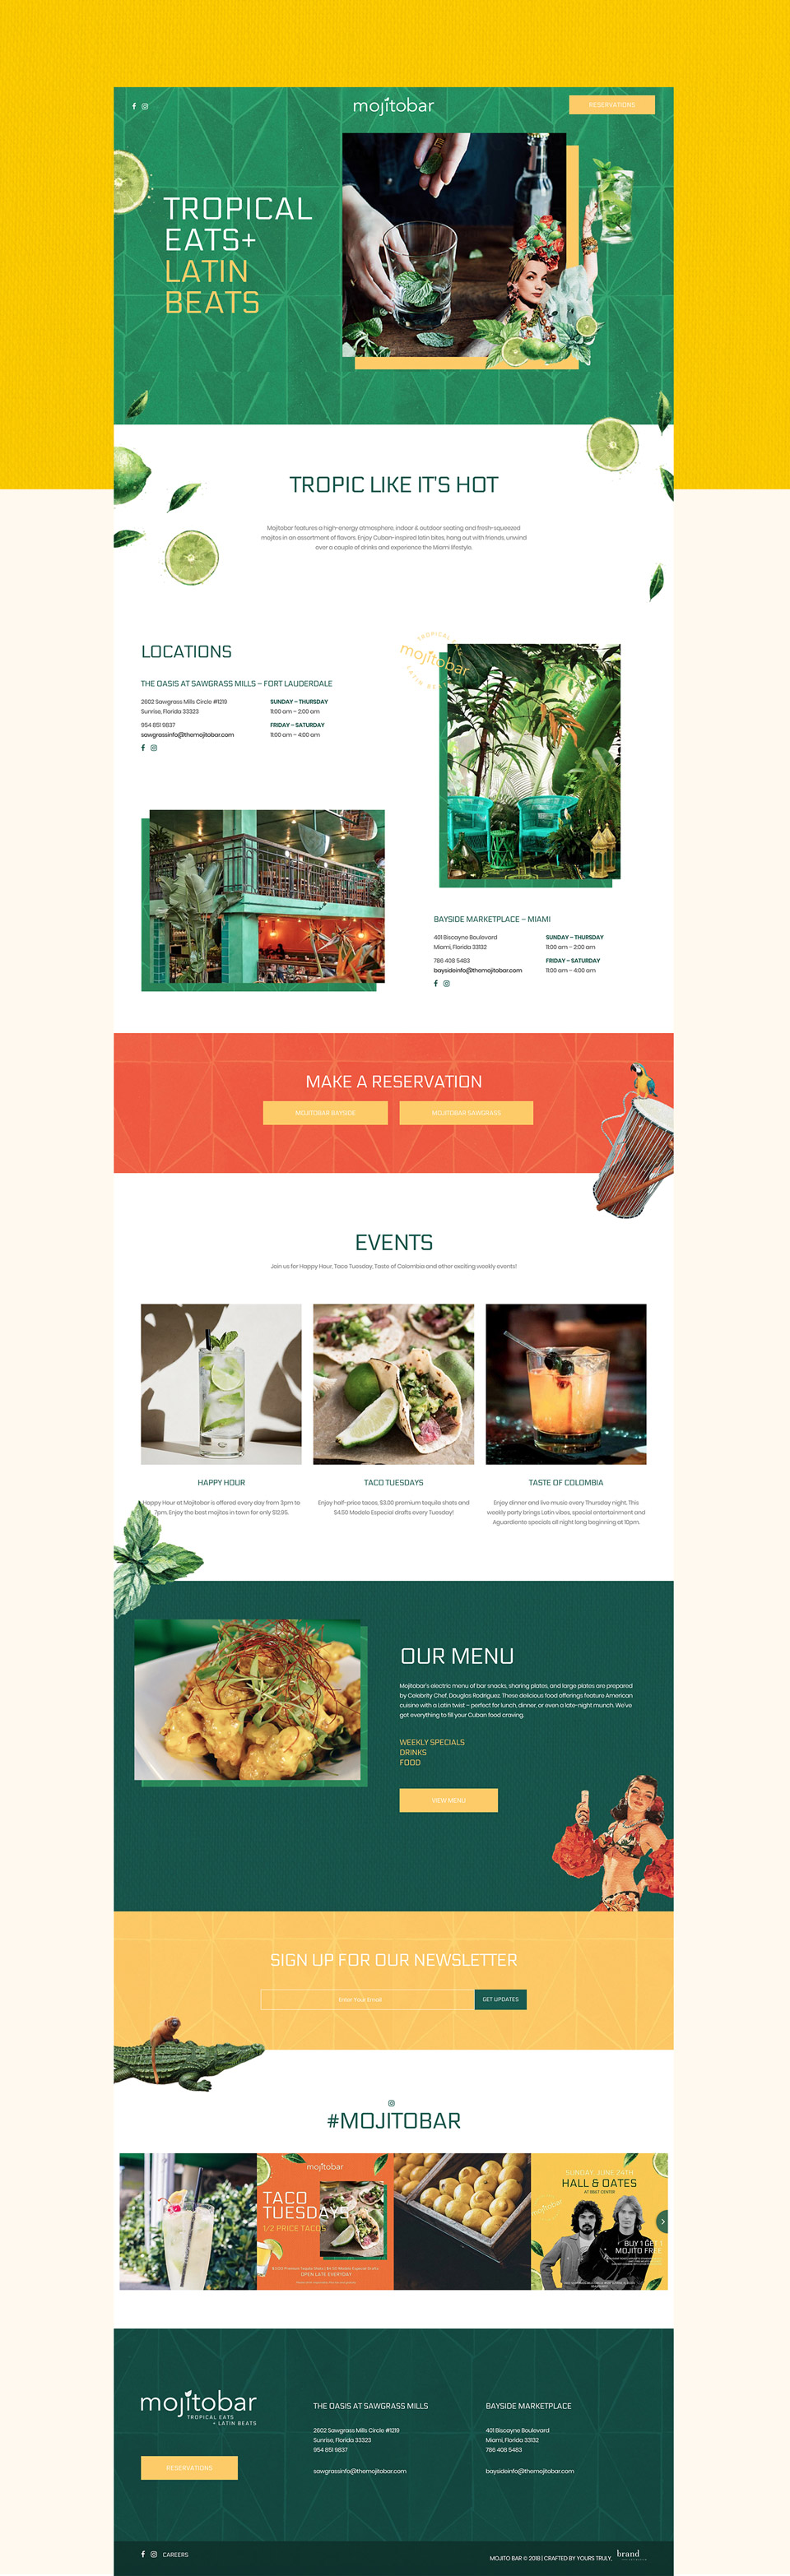 mojitobar-website-mockup